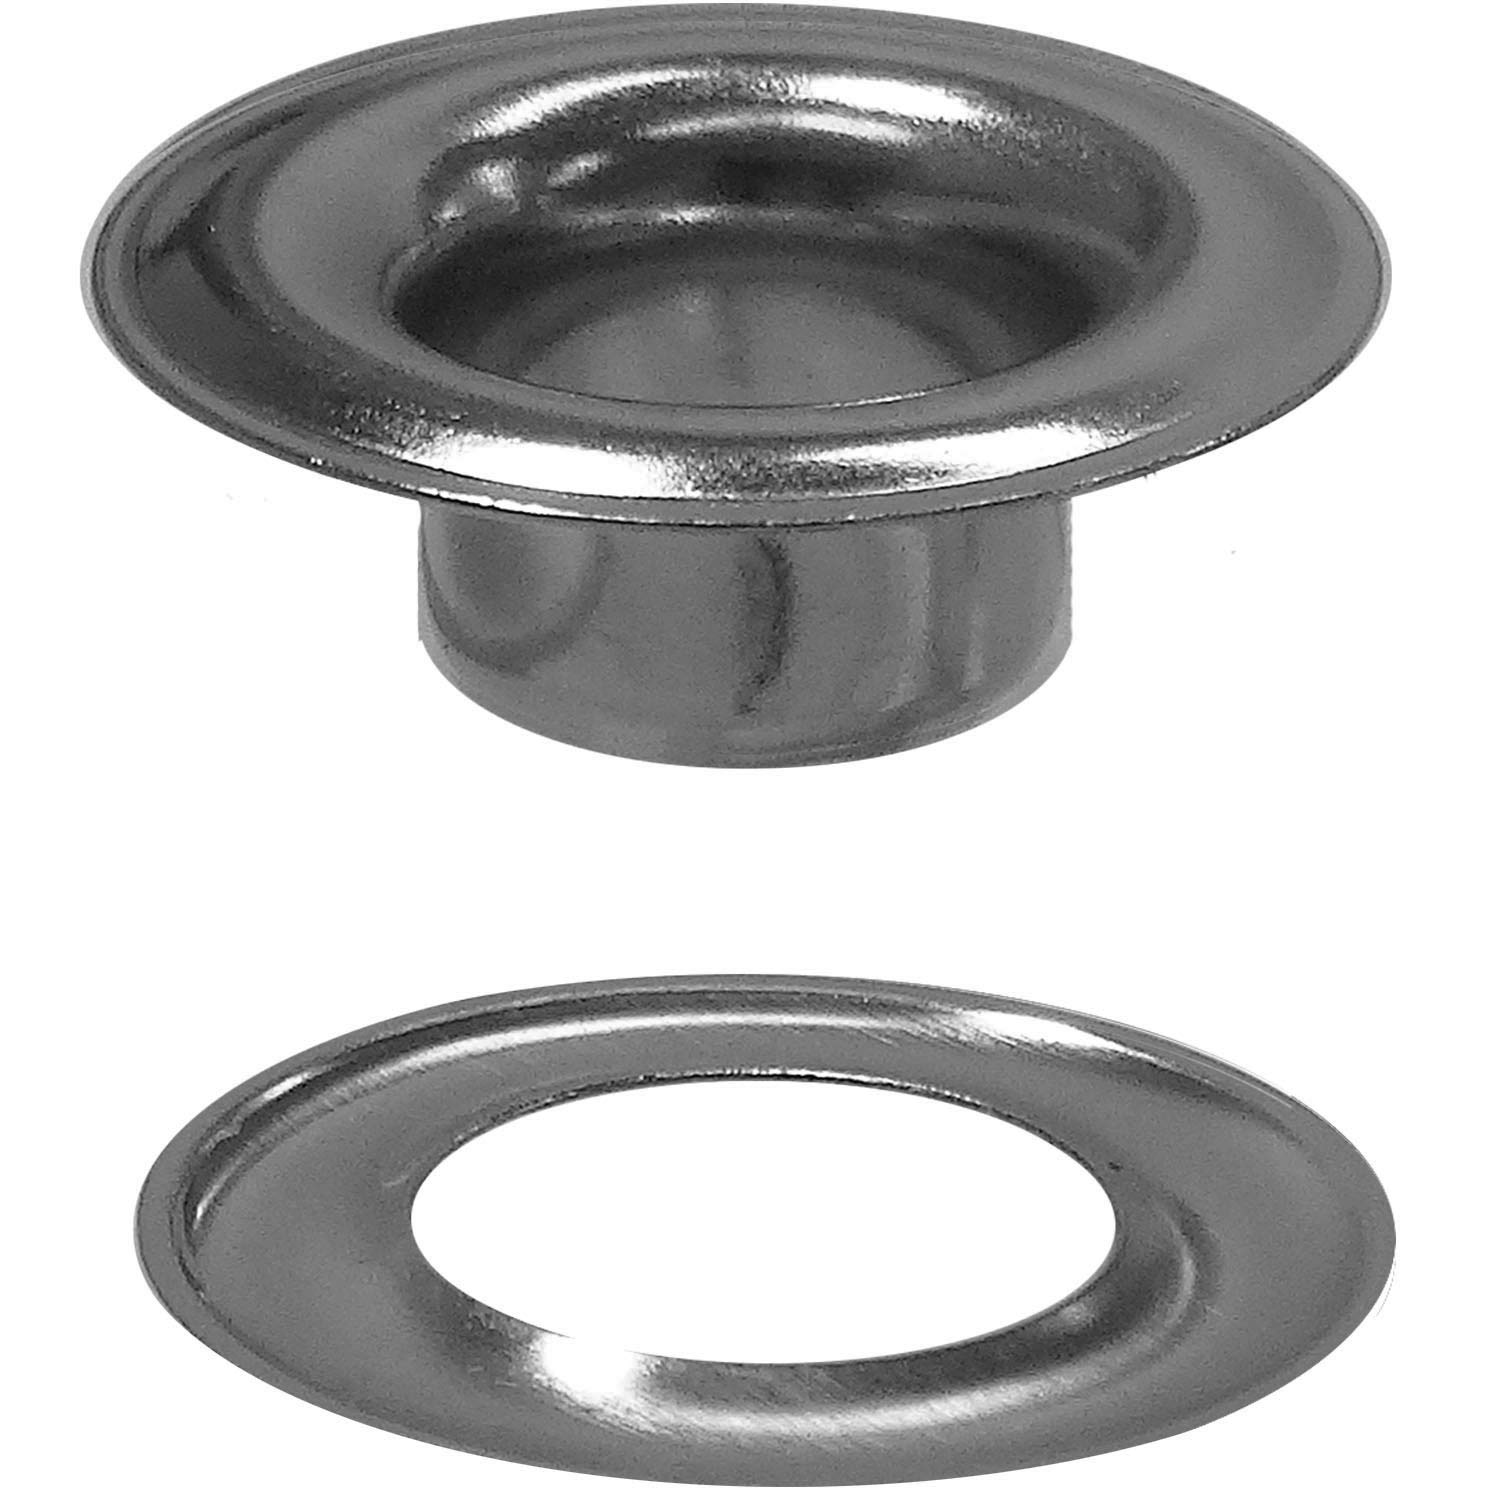 Stimpson Sheet Metal Grommet and Washer Nickel-Plated Durable, Reliable, Heavy-Duty #1 Set (3,600 Pieces of Each)